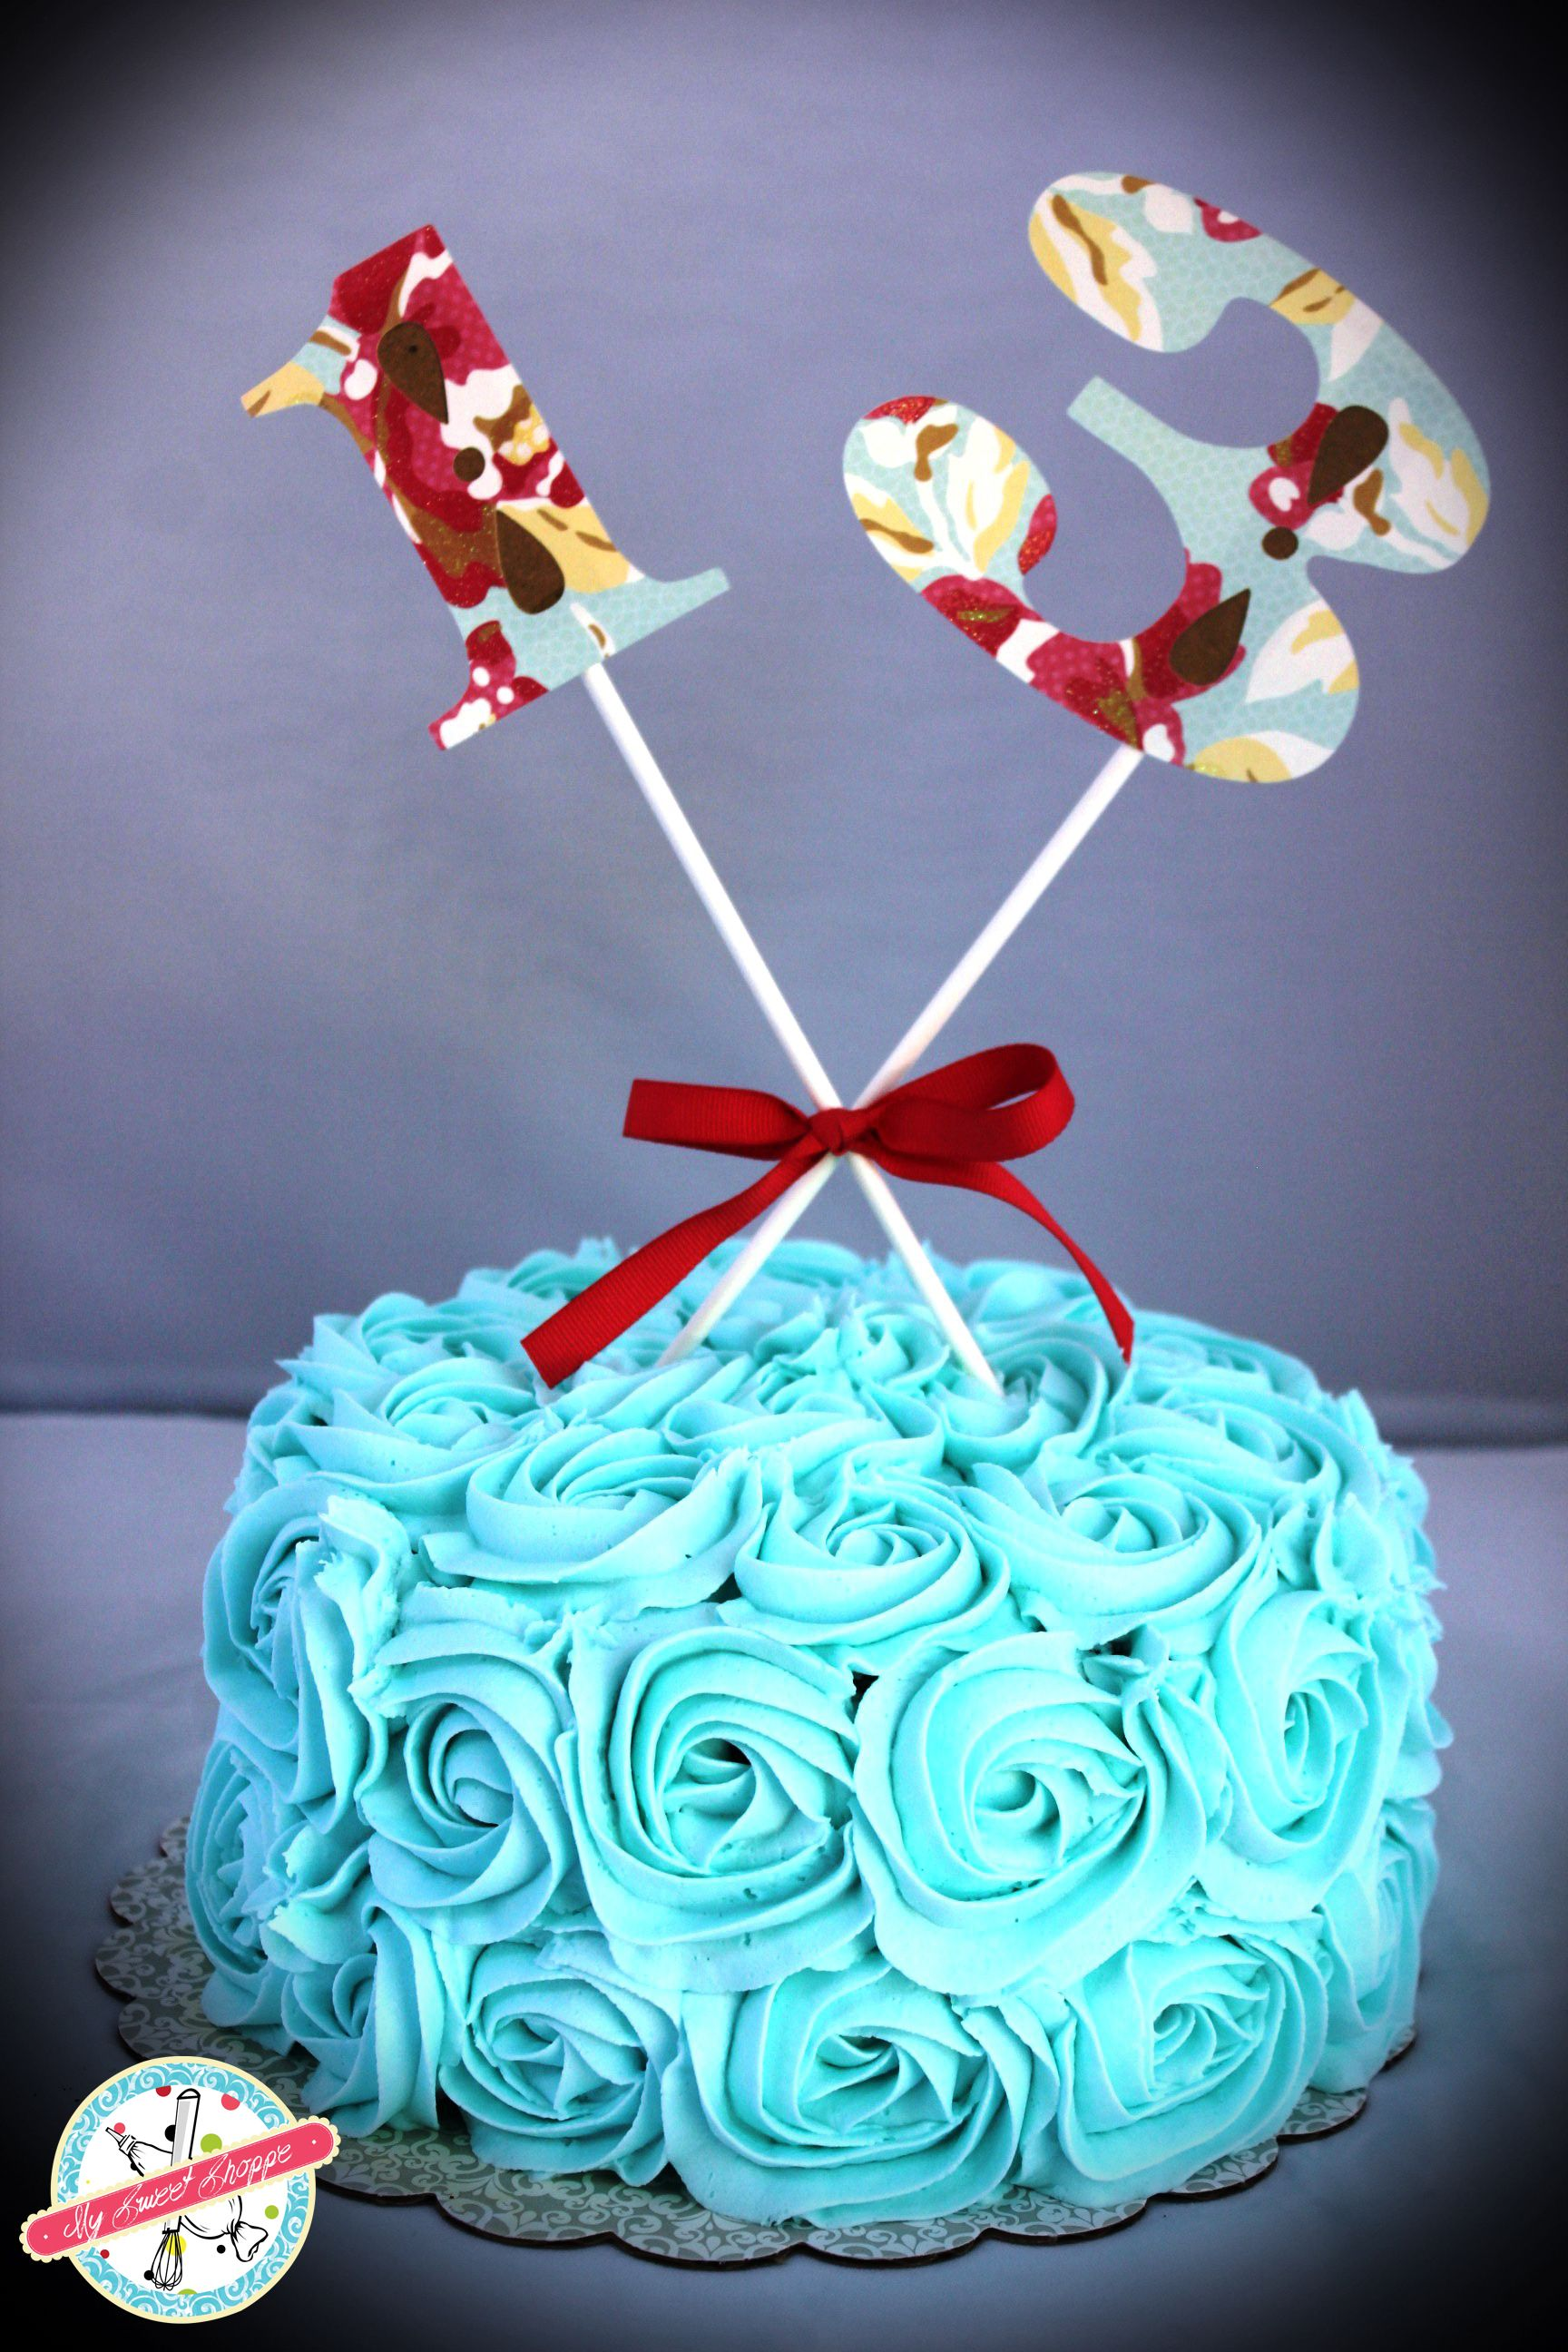 TealTurquoise rose cake for 13 year old CakesCupcakes